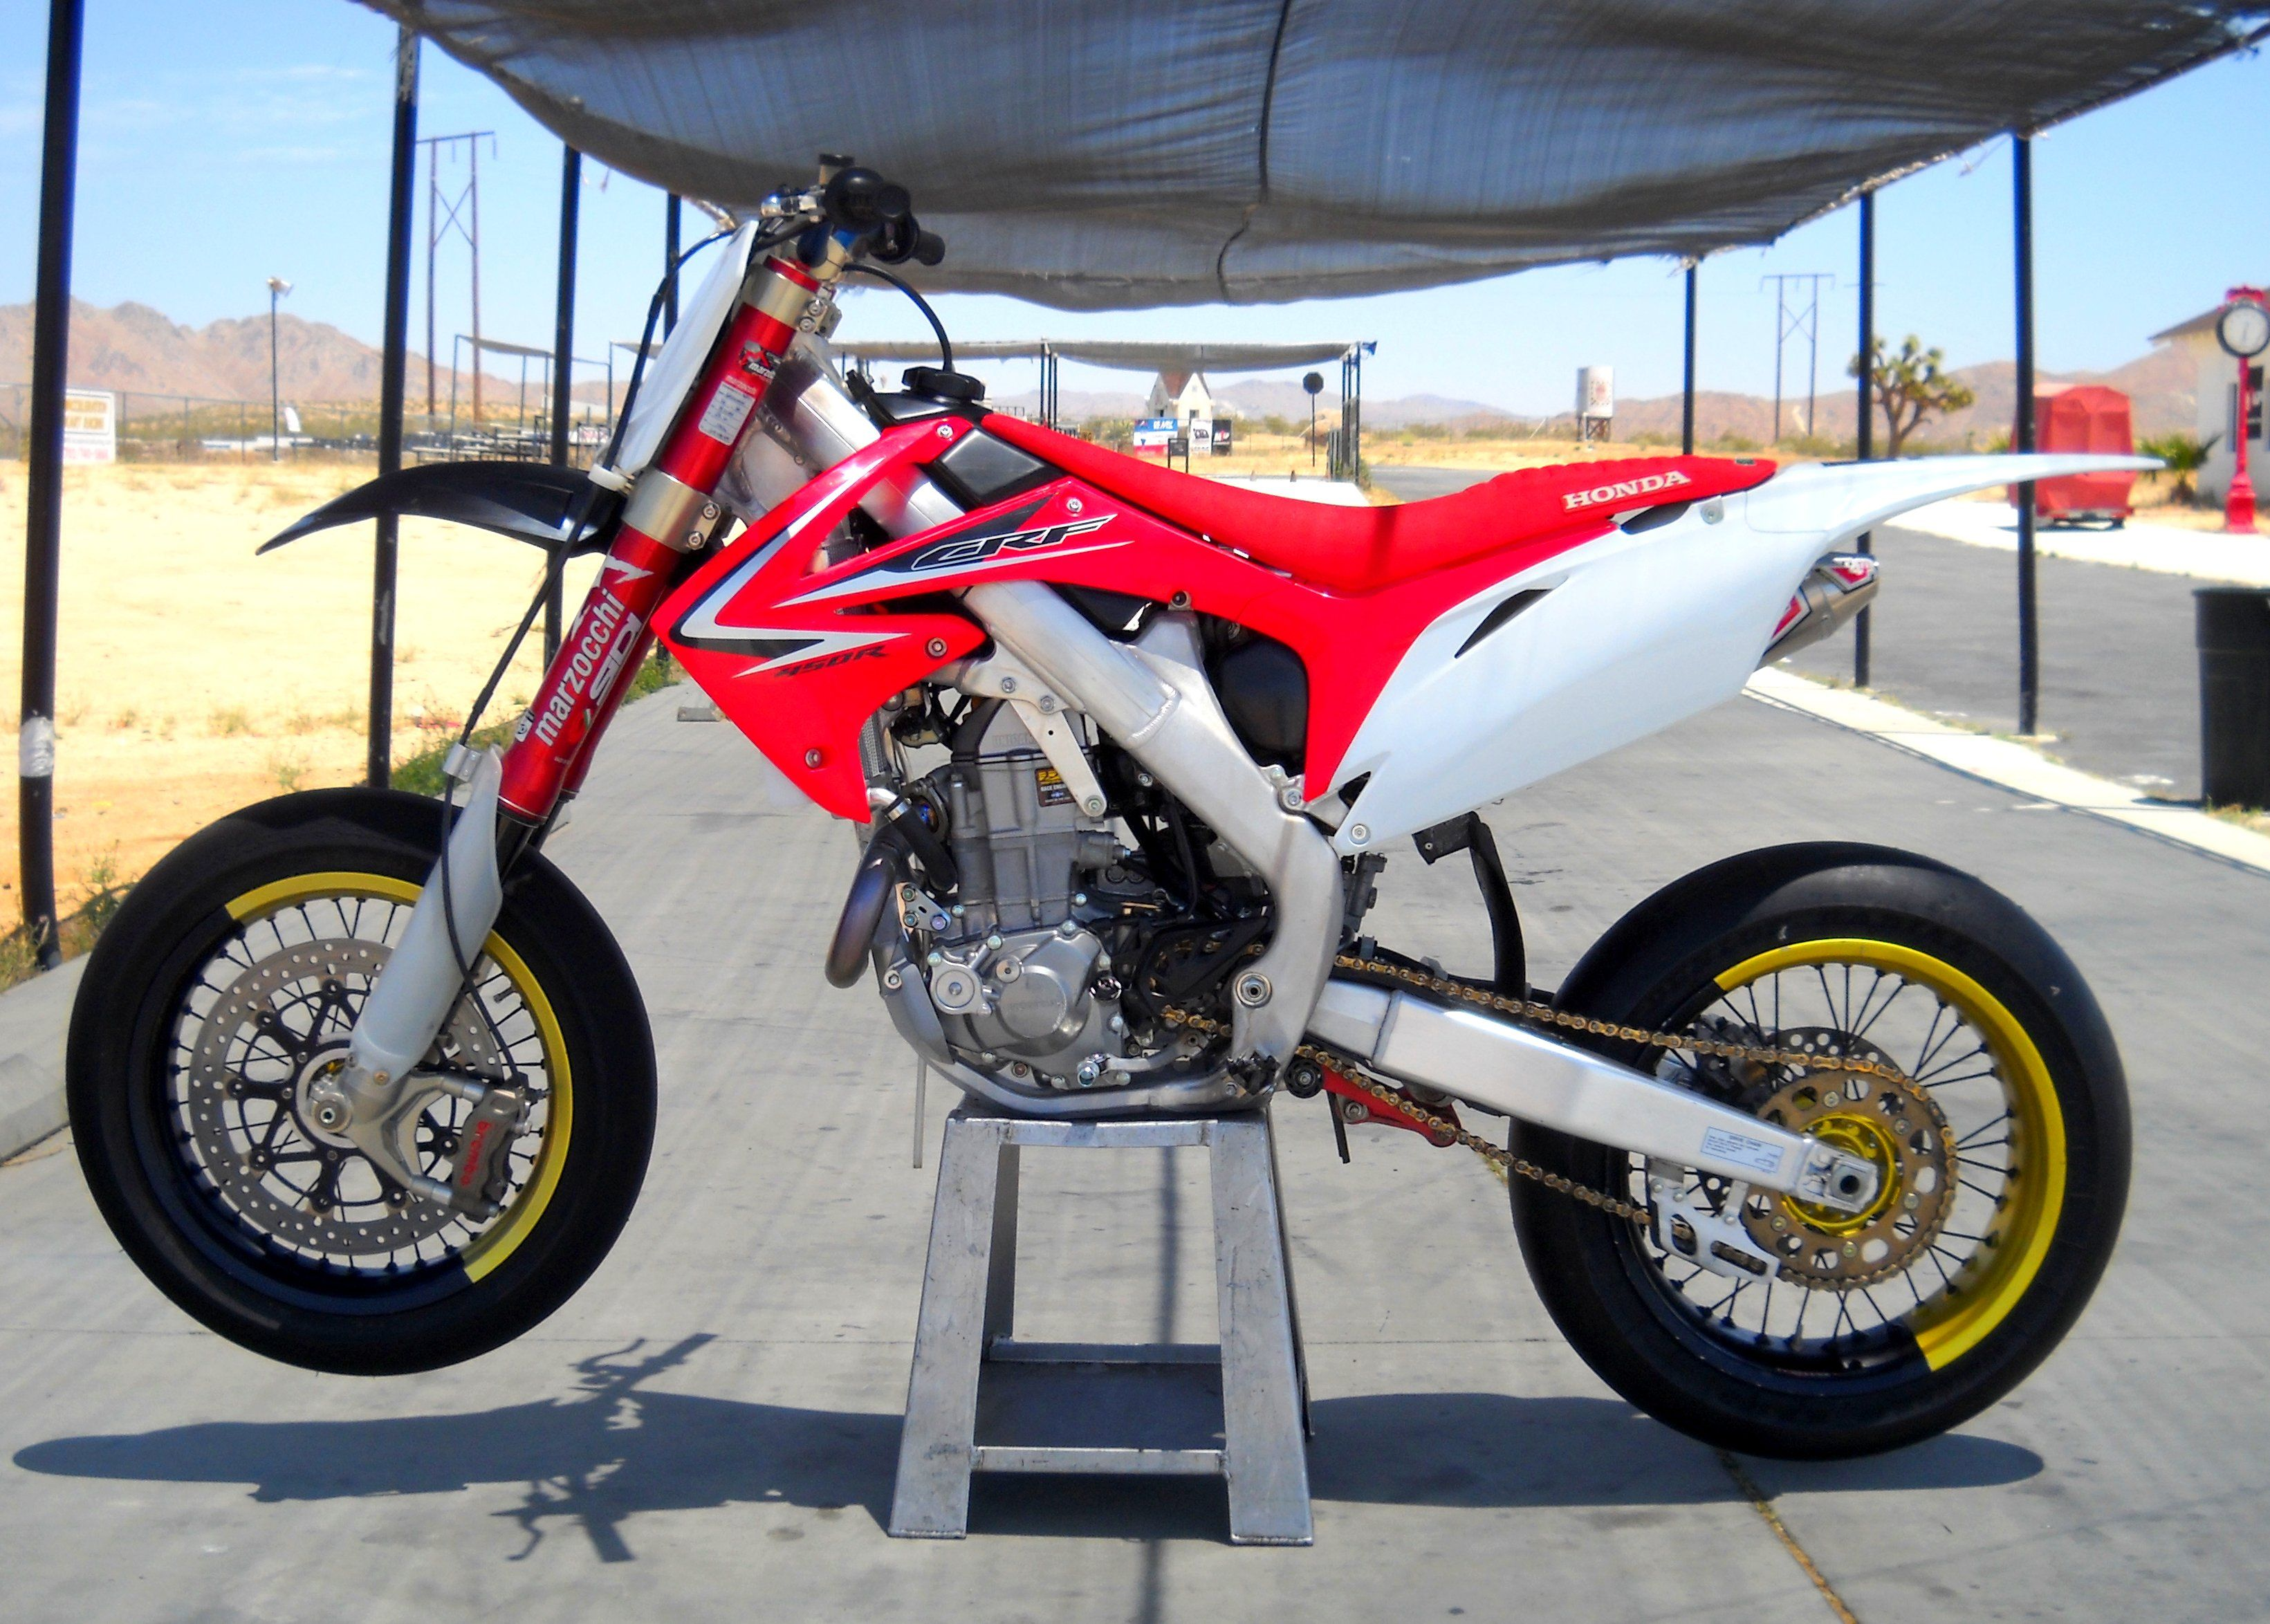 Honda Crf 450 Supermoto Supermoto Honda Honda Supermoto Motorcycle